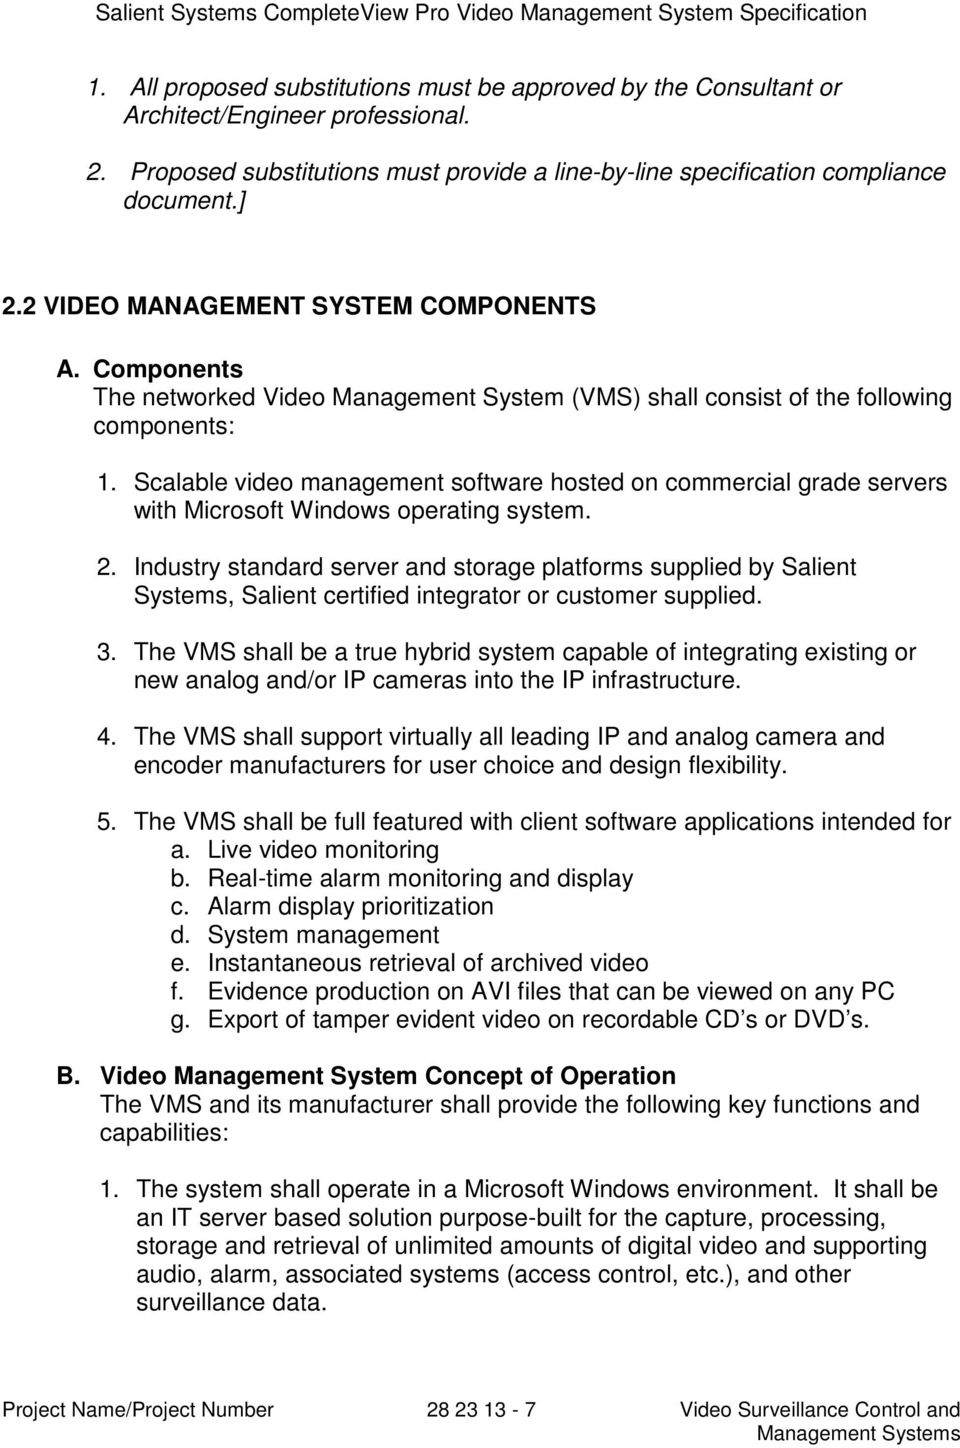 Completeview Pro Video Management System Pdf Network Diagram For Single Site Standard Quicktrac Setup Scalable Software Hosted On Commercial Grade Servers With Microsoft Windows Operating 2